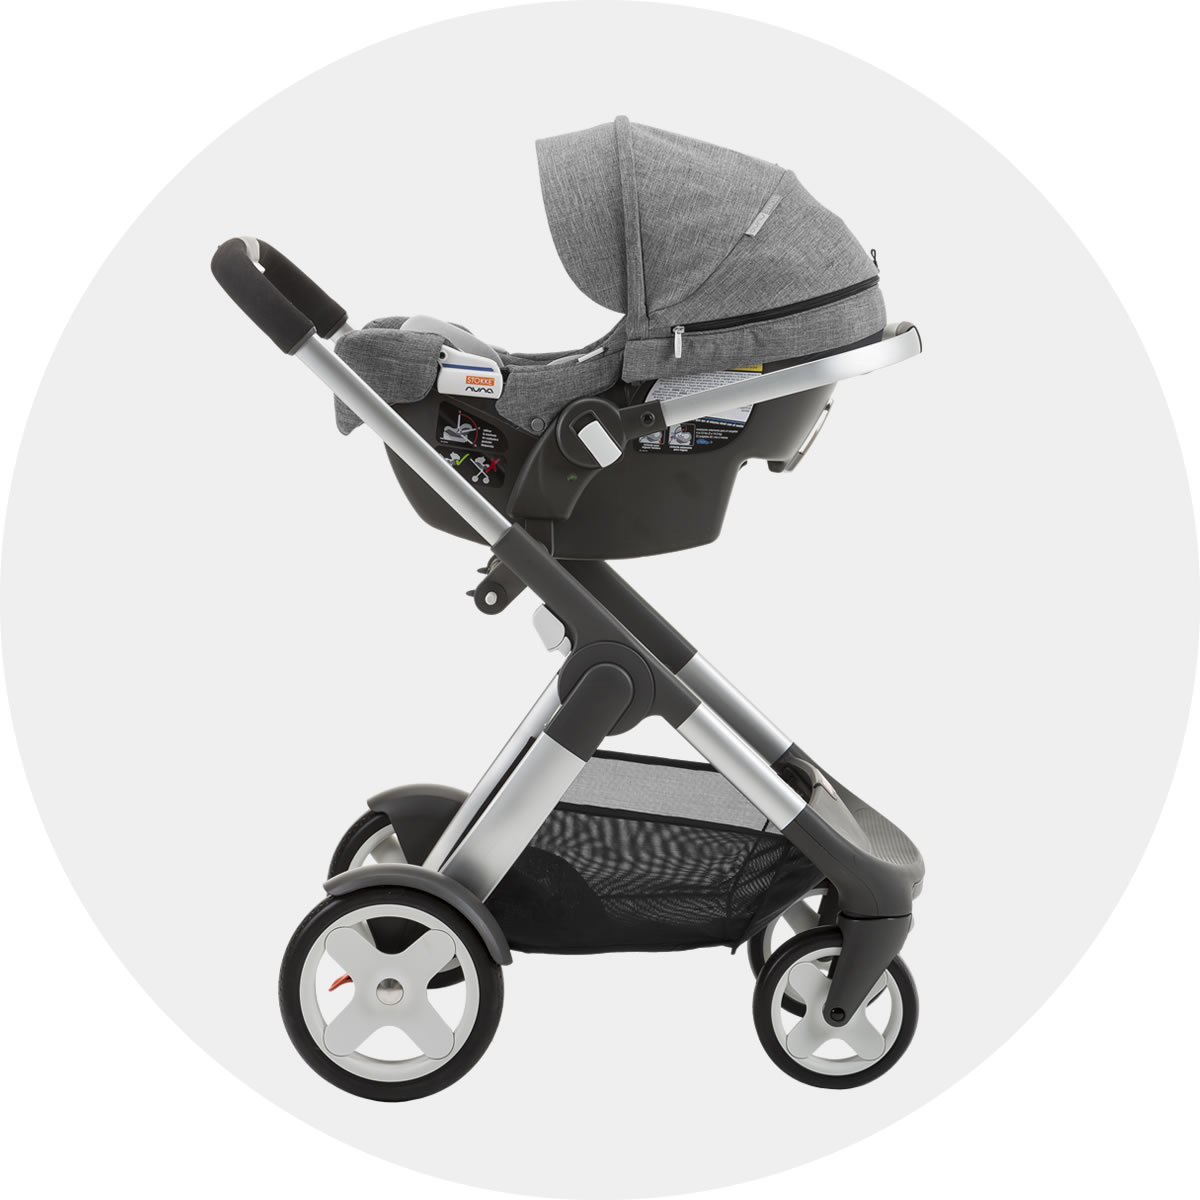 Stokke Pipa Infant Car Seat Nuna Black